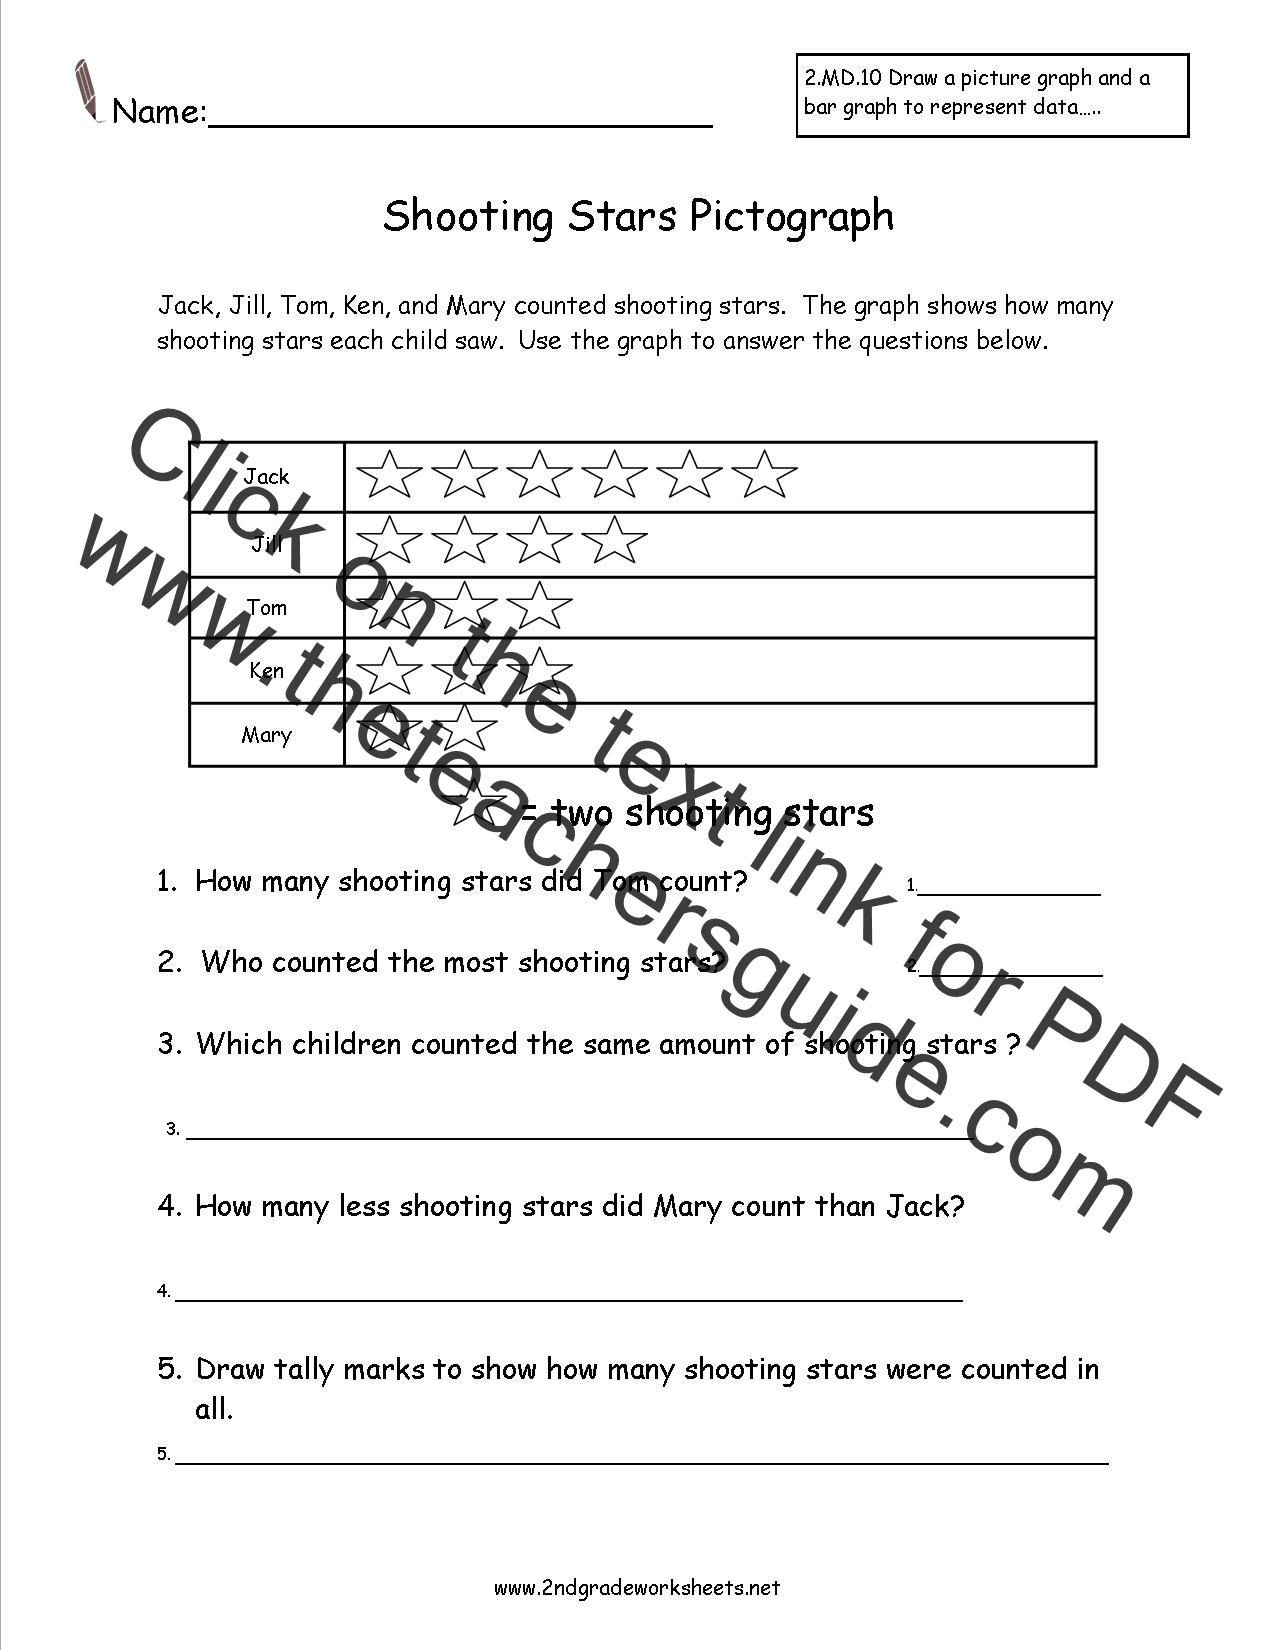 Pictograph Worksheets 2nd Grade Second Grade Reading and Creating Pictograph Worksheets